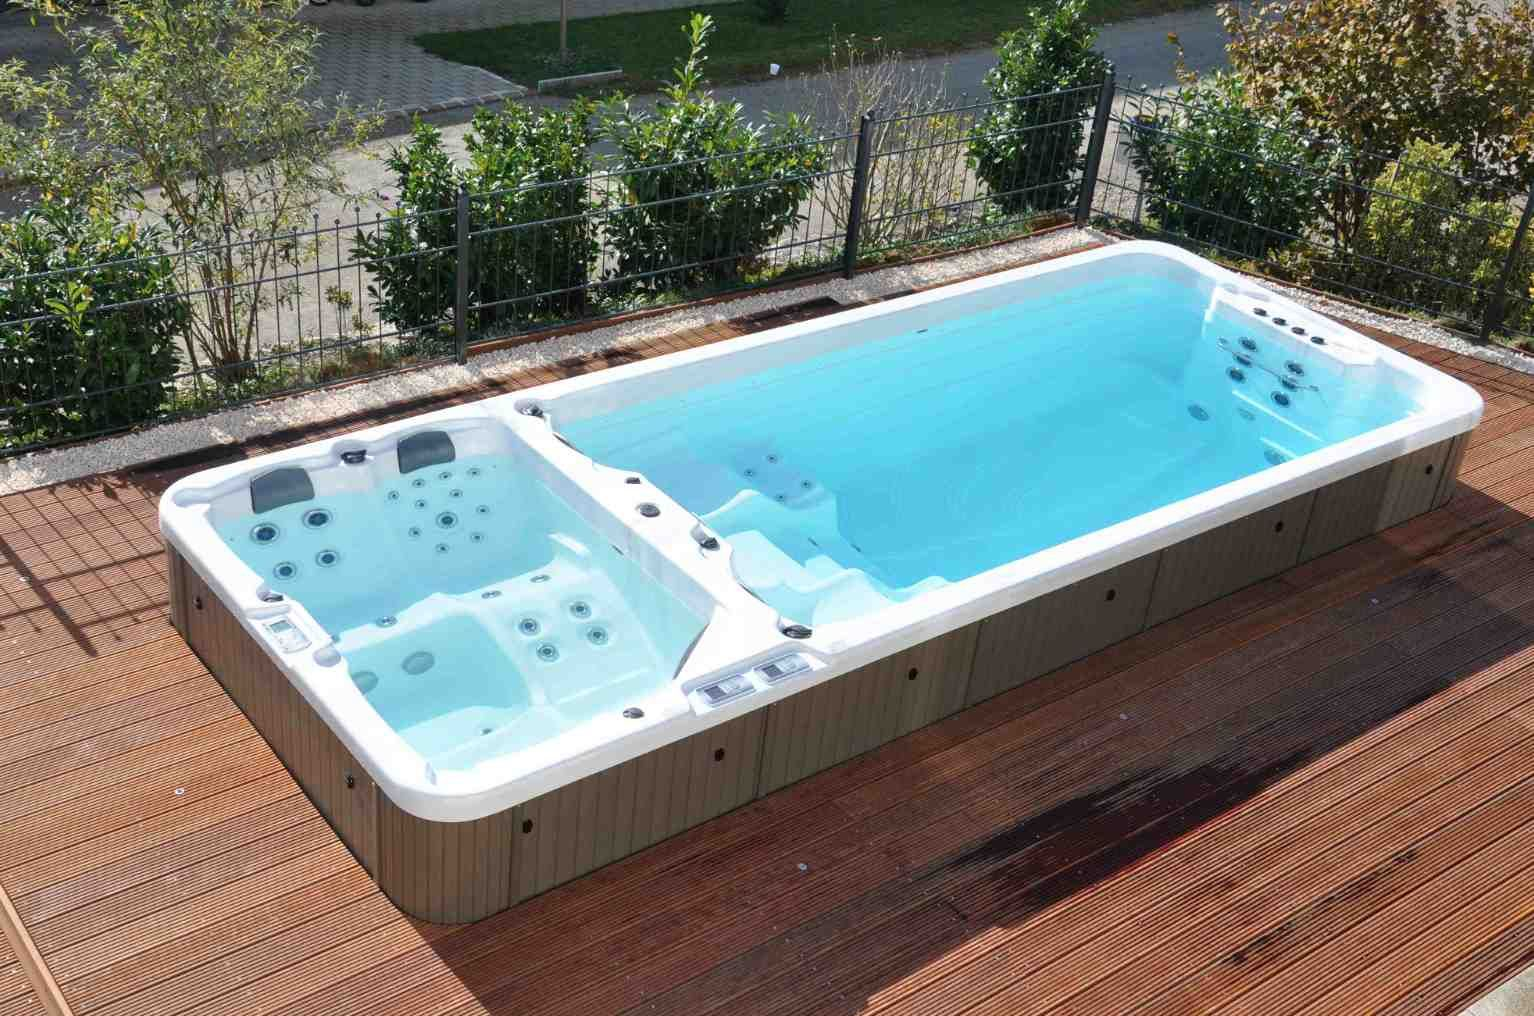 Jacuzzi Pool Covers Swiming Pools Plunge Pools Swim Pools And Swim Spas With